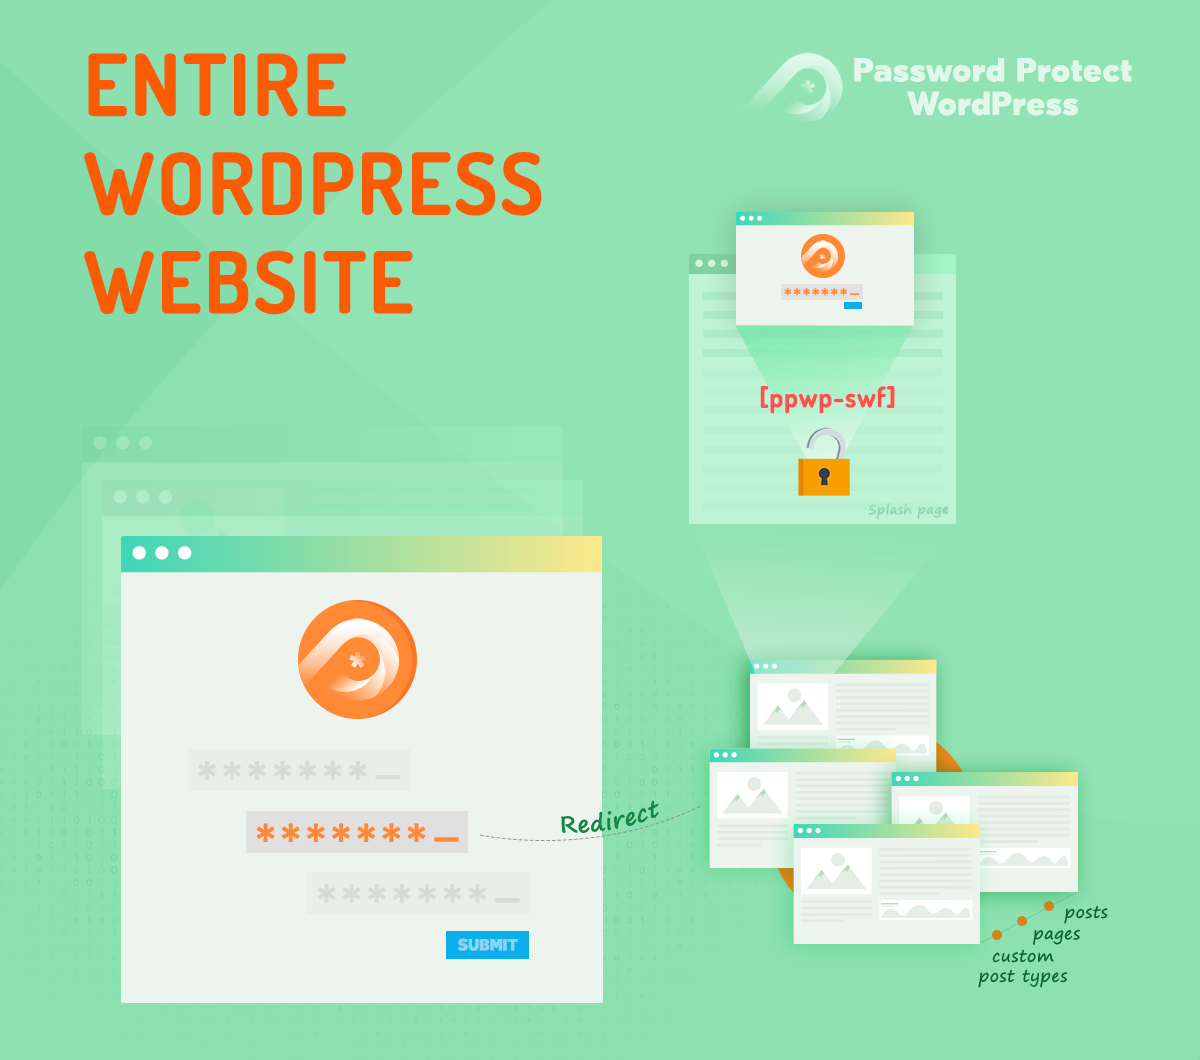 PPWP Pro Glossary: Sitewide Protection